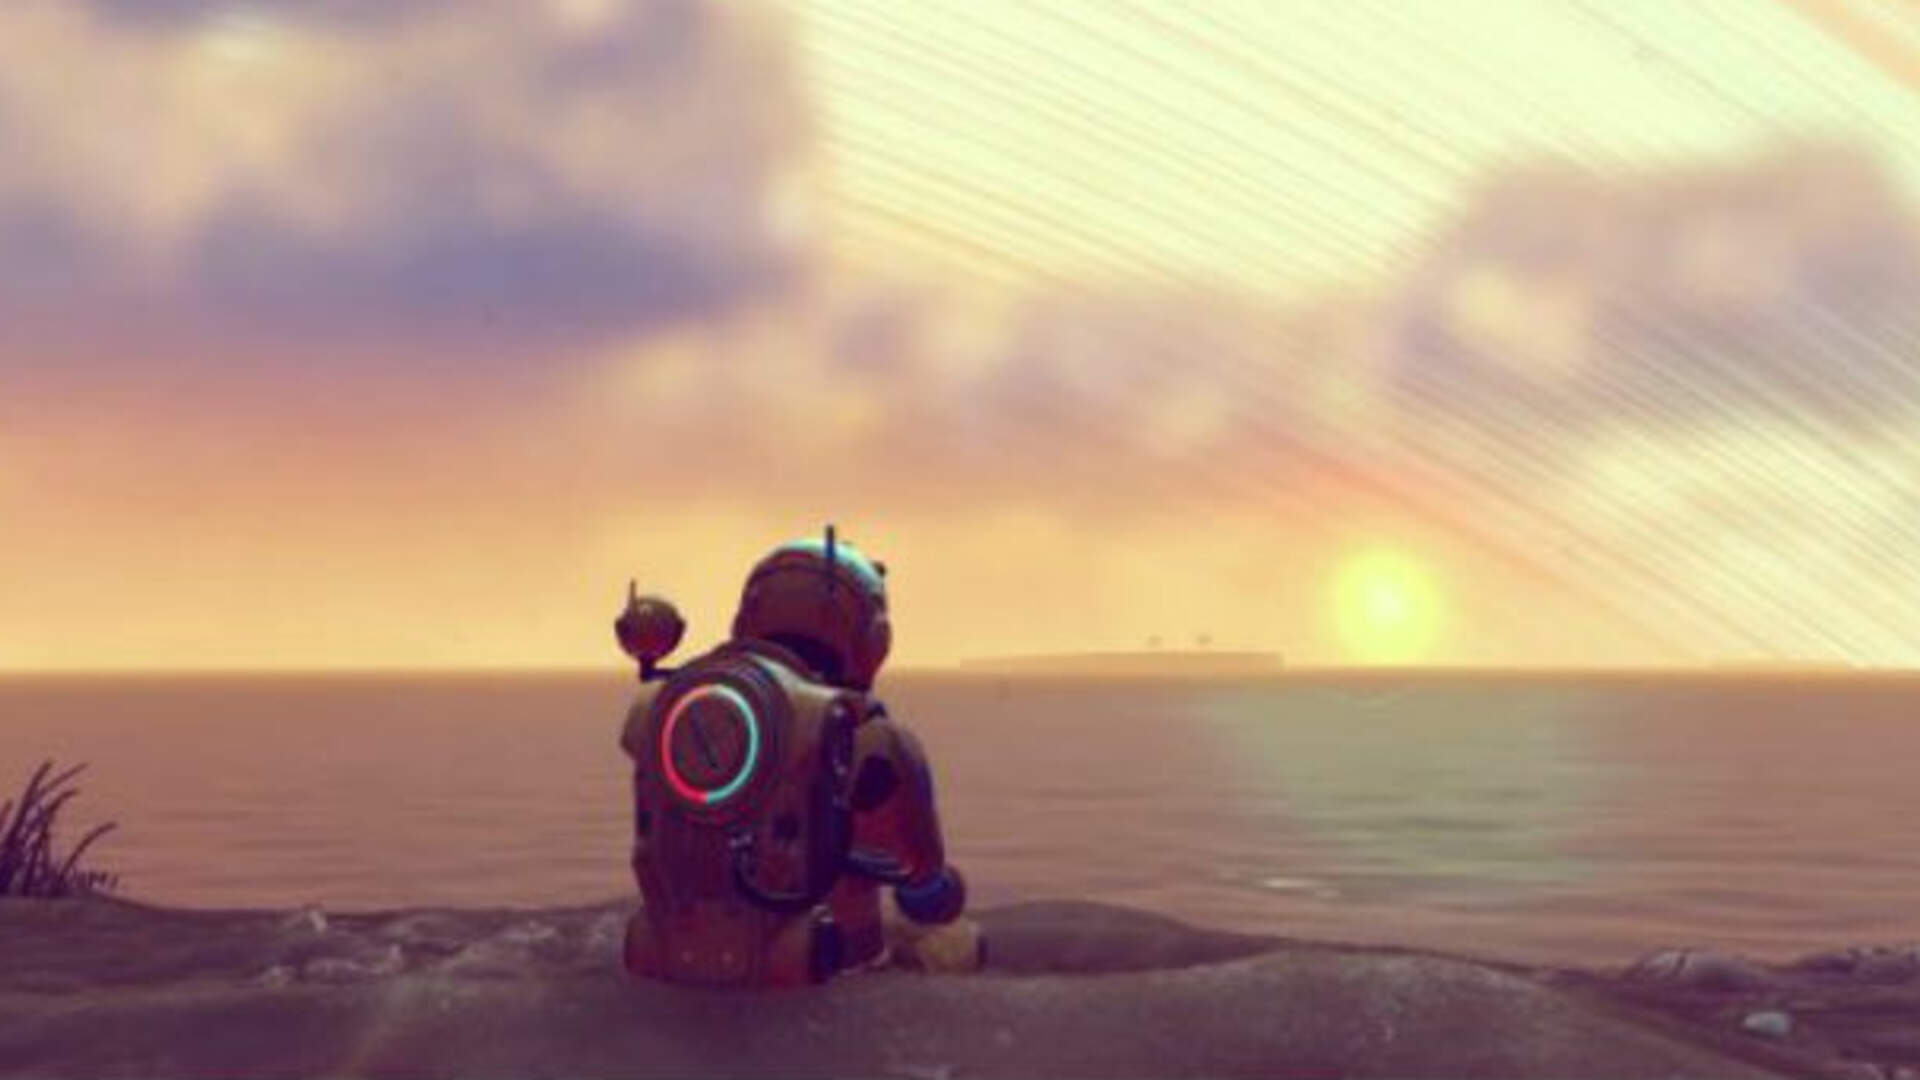 The Most Beautiful Pictures Taken in No Man's Sky